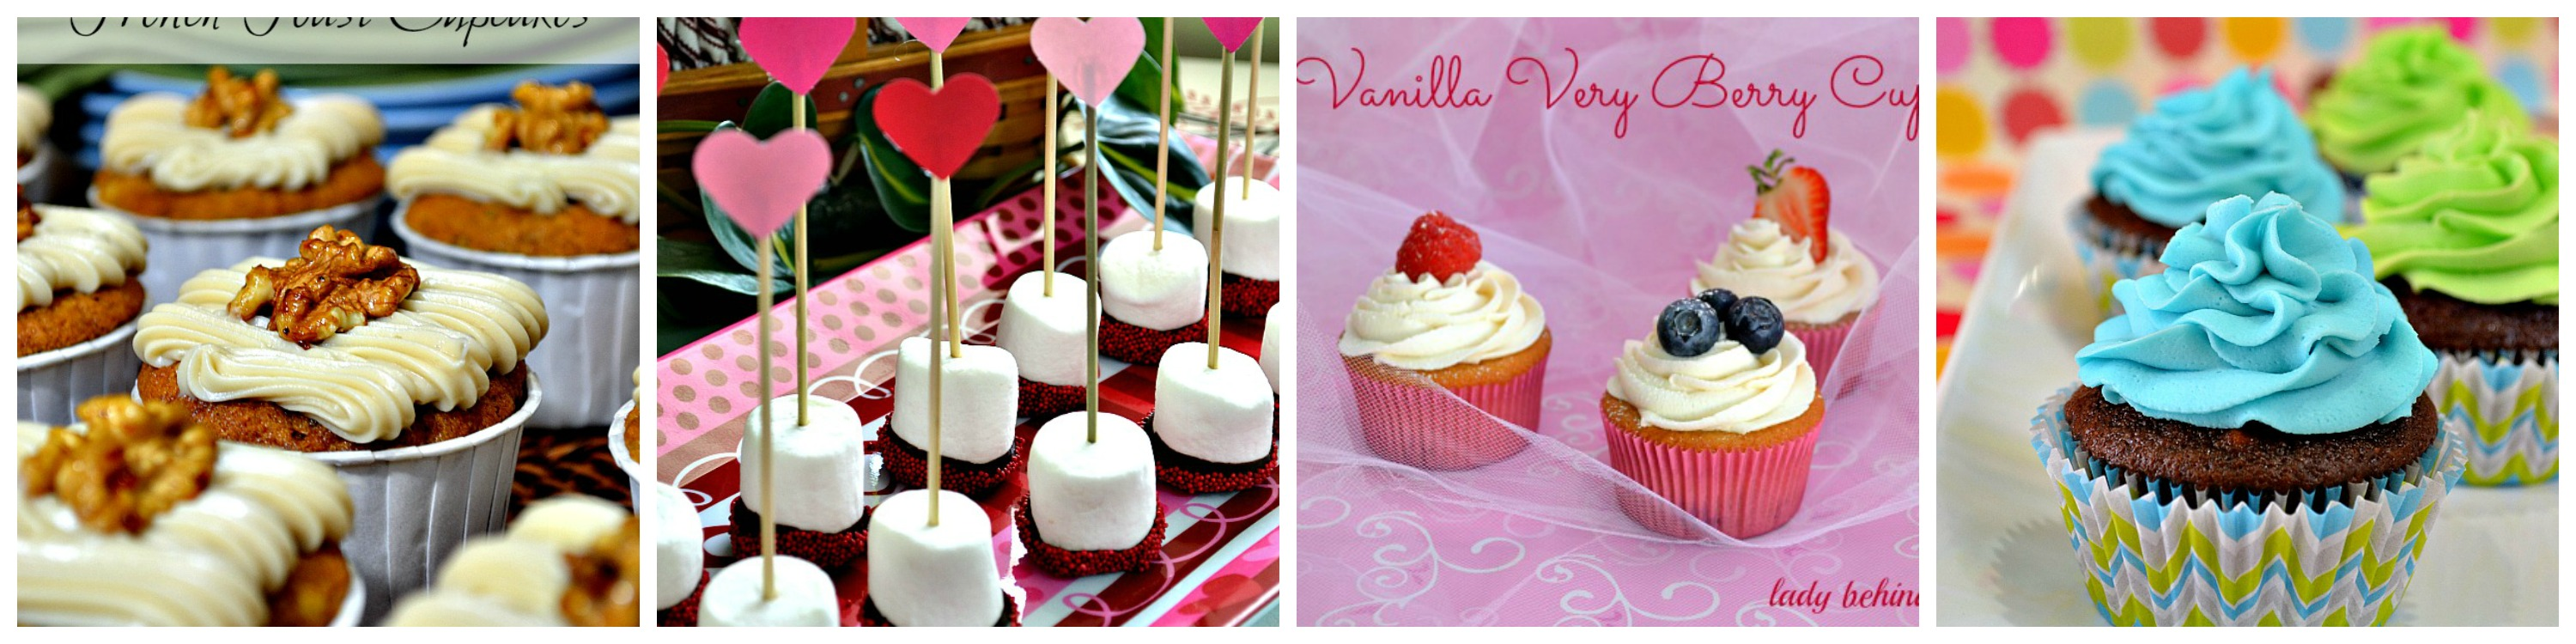 Easy baby shower dessert ideas